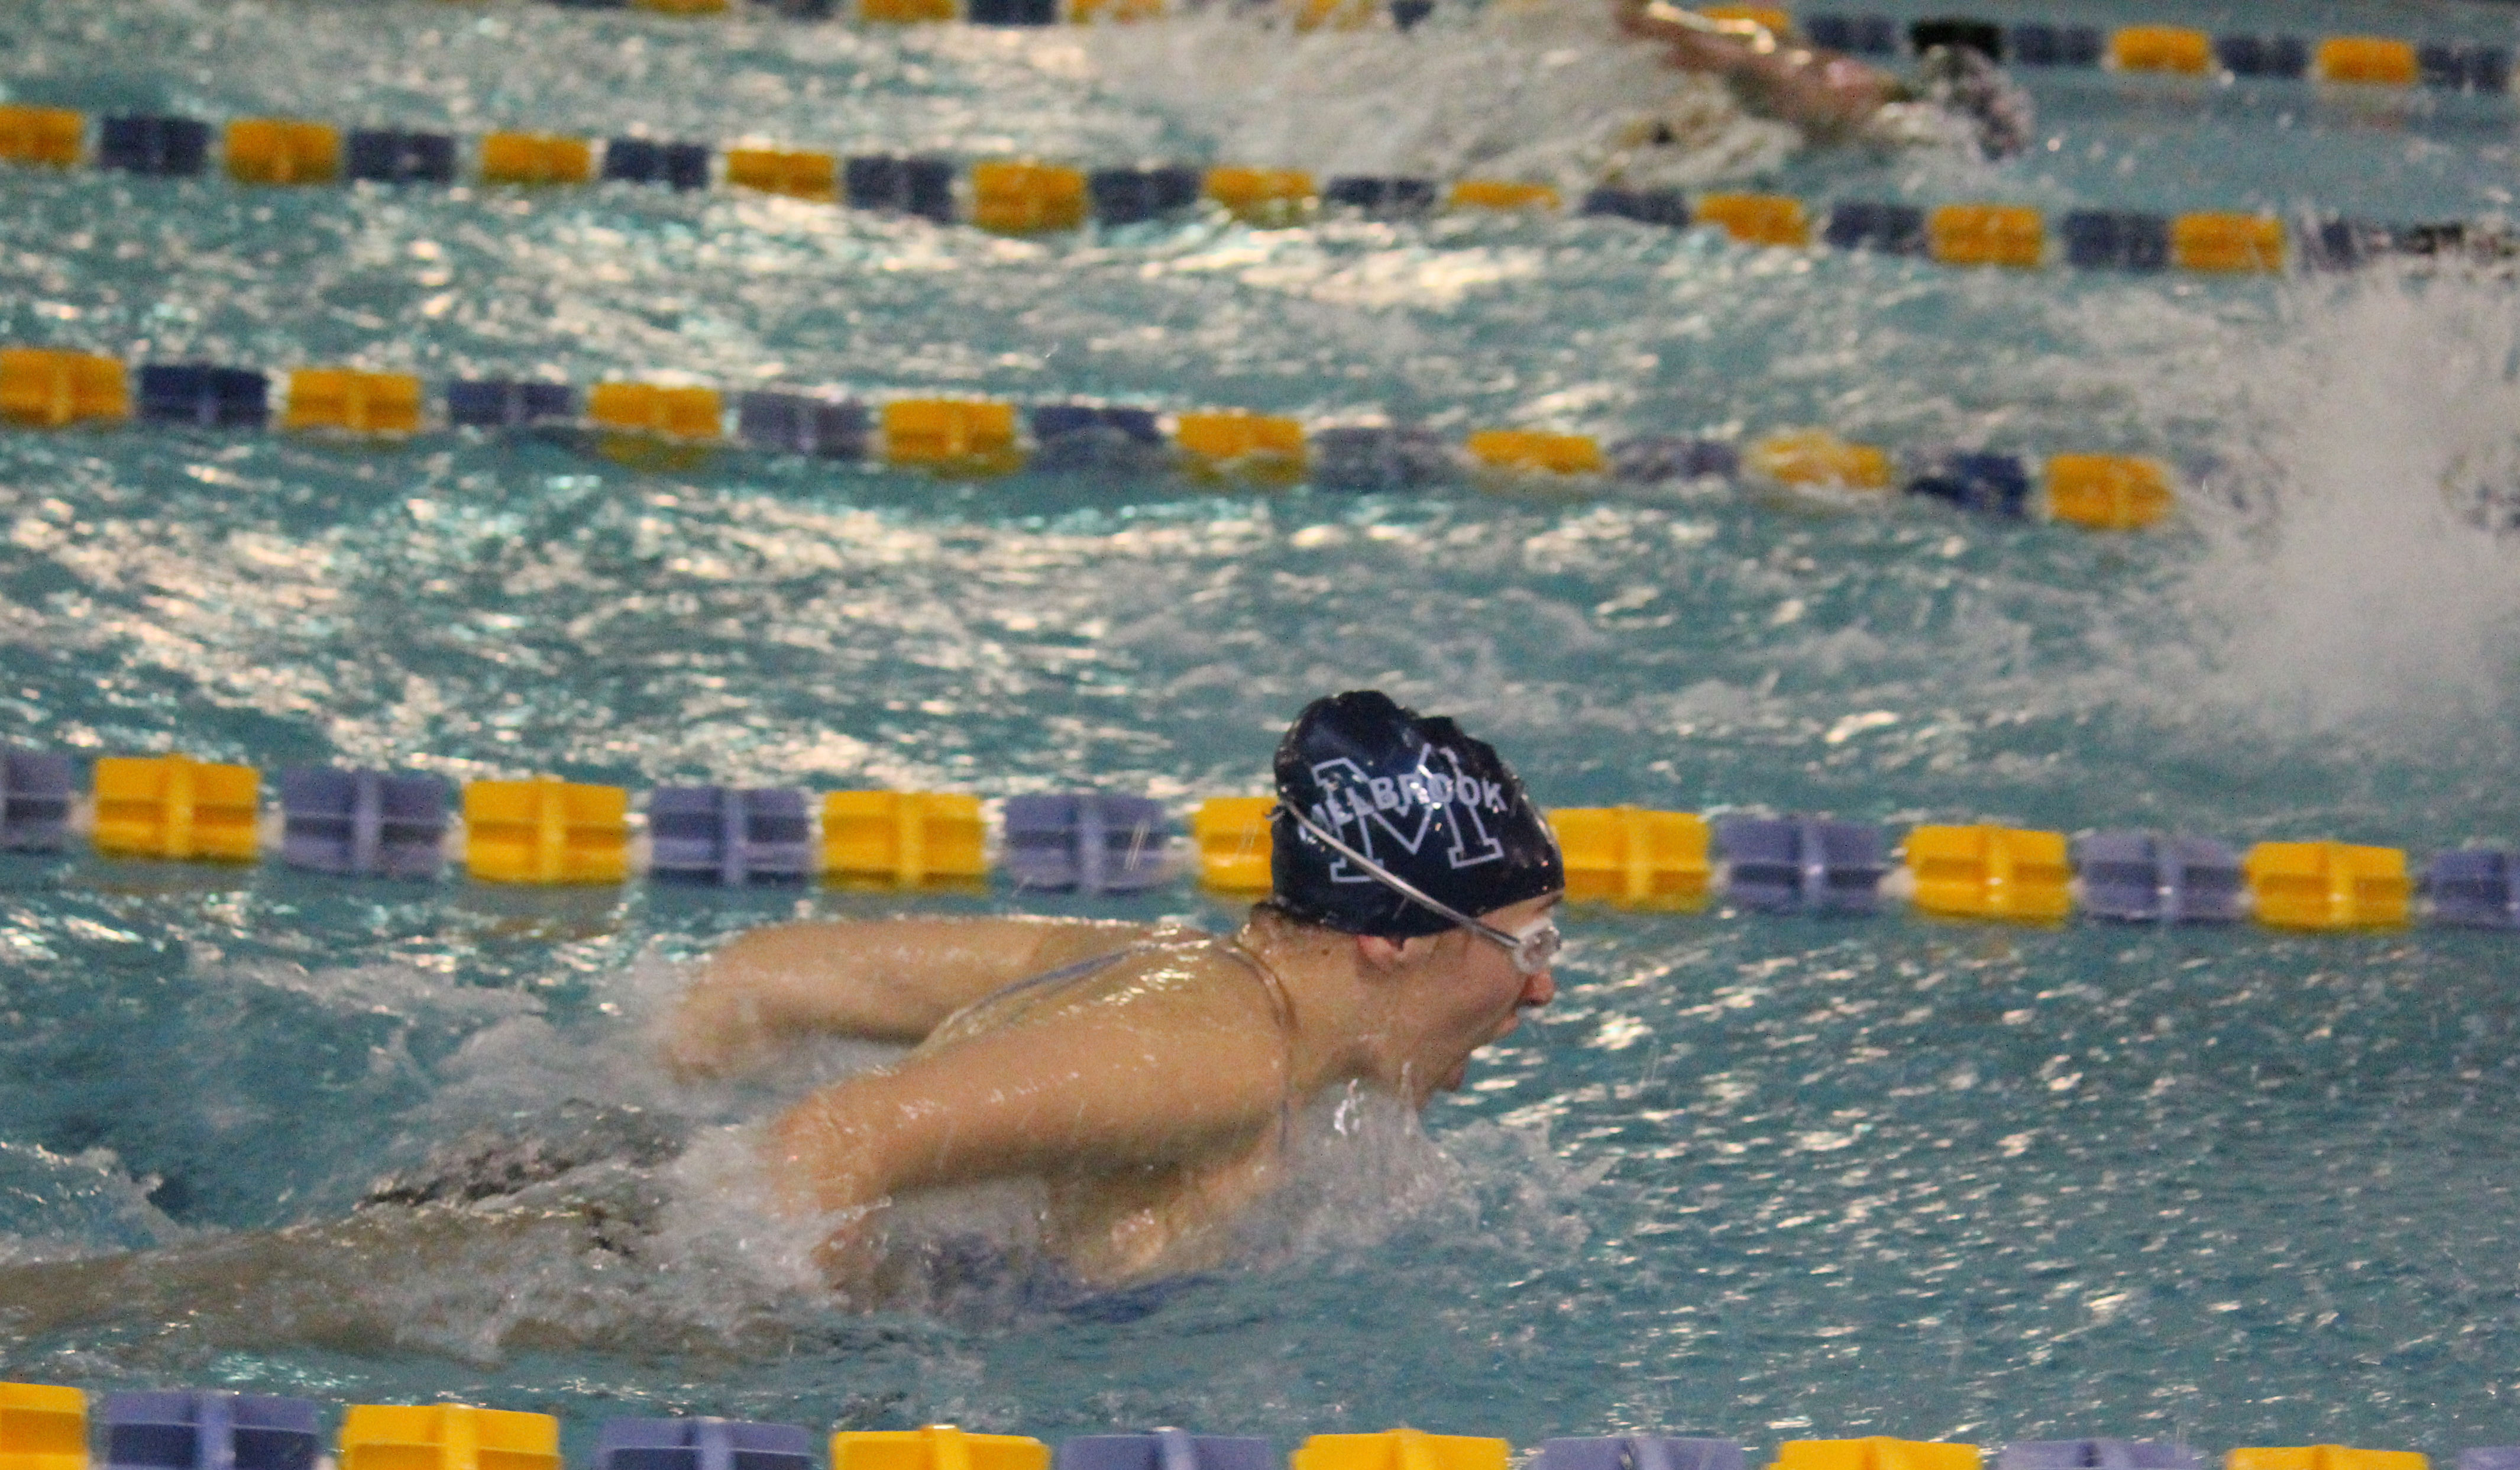 Swimmer Success at States!